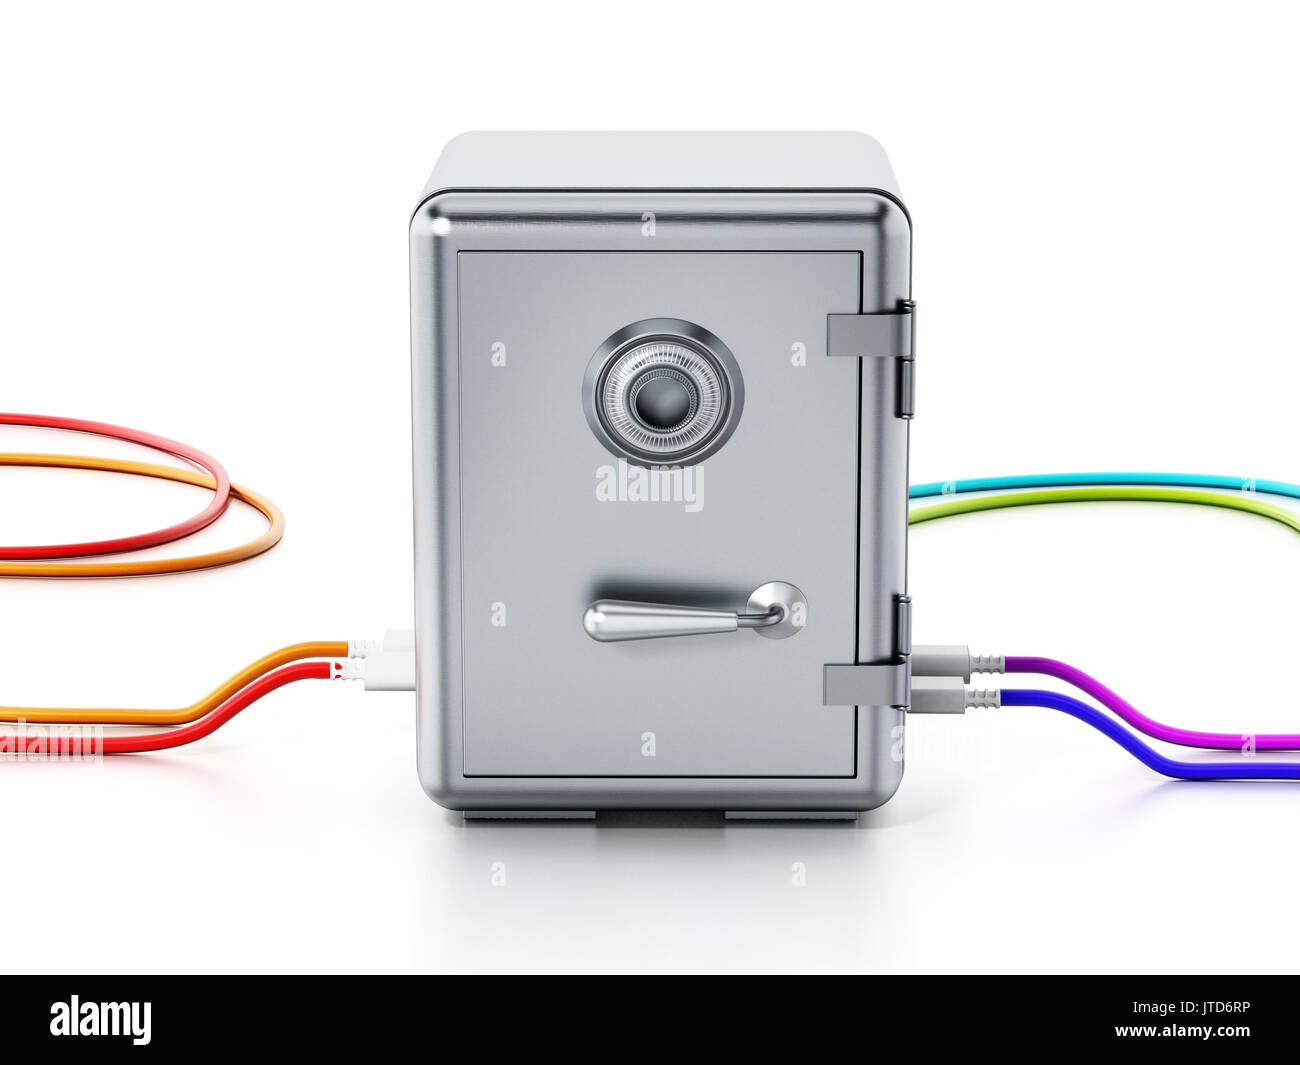 Usb Wire Stock Photos Images Alamy Wiring A Plug Cables Connected To Steel Safe 3d Illustration Image